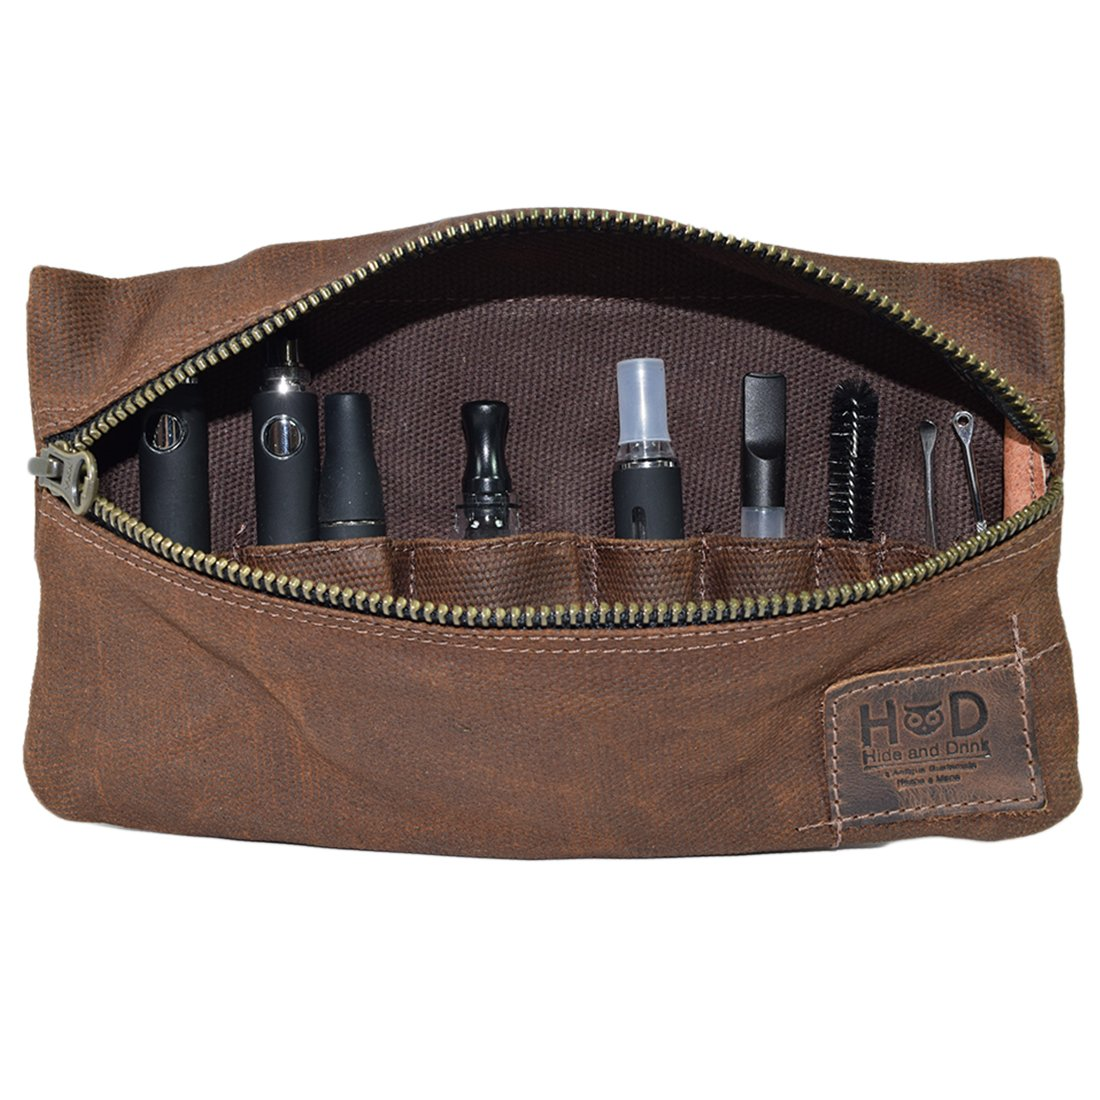 Waxed Canvas Vape Pen Accessories Kit Pouch Holder, Secure Fit, Cord Storage, G Pen Soft Travel Bag Handmade by Hide & Drink :: Honey Bourbon